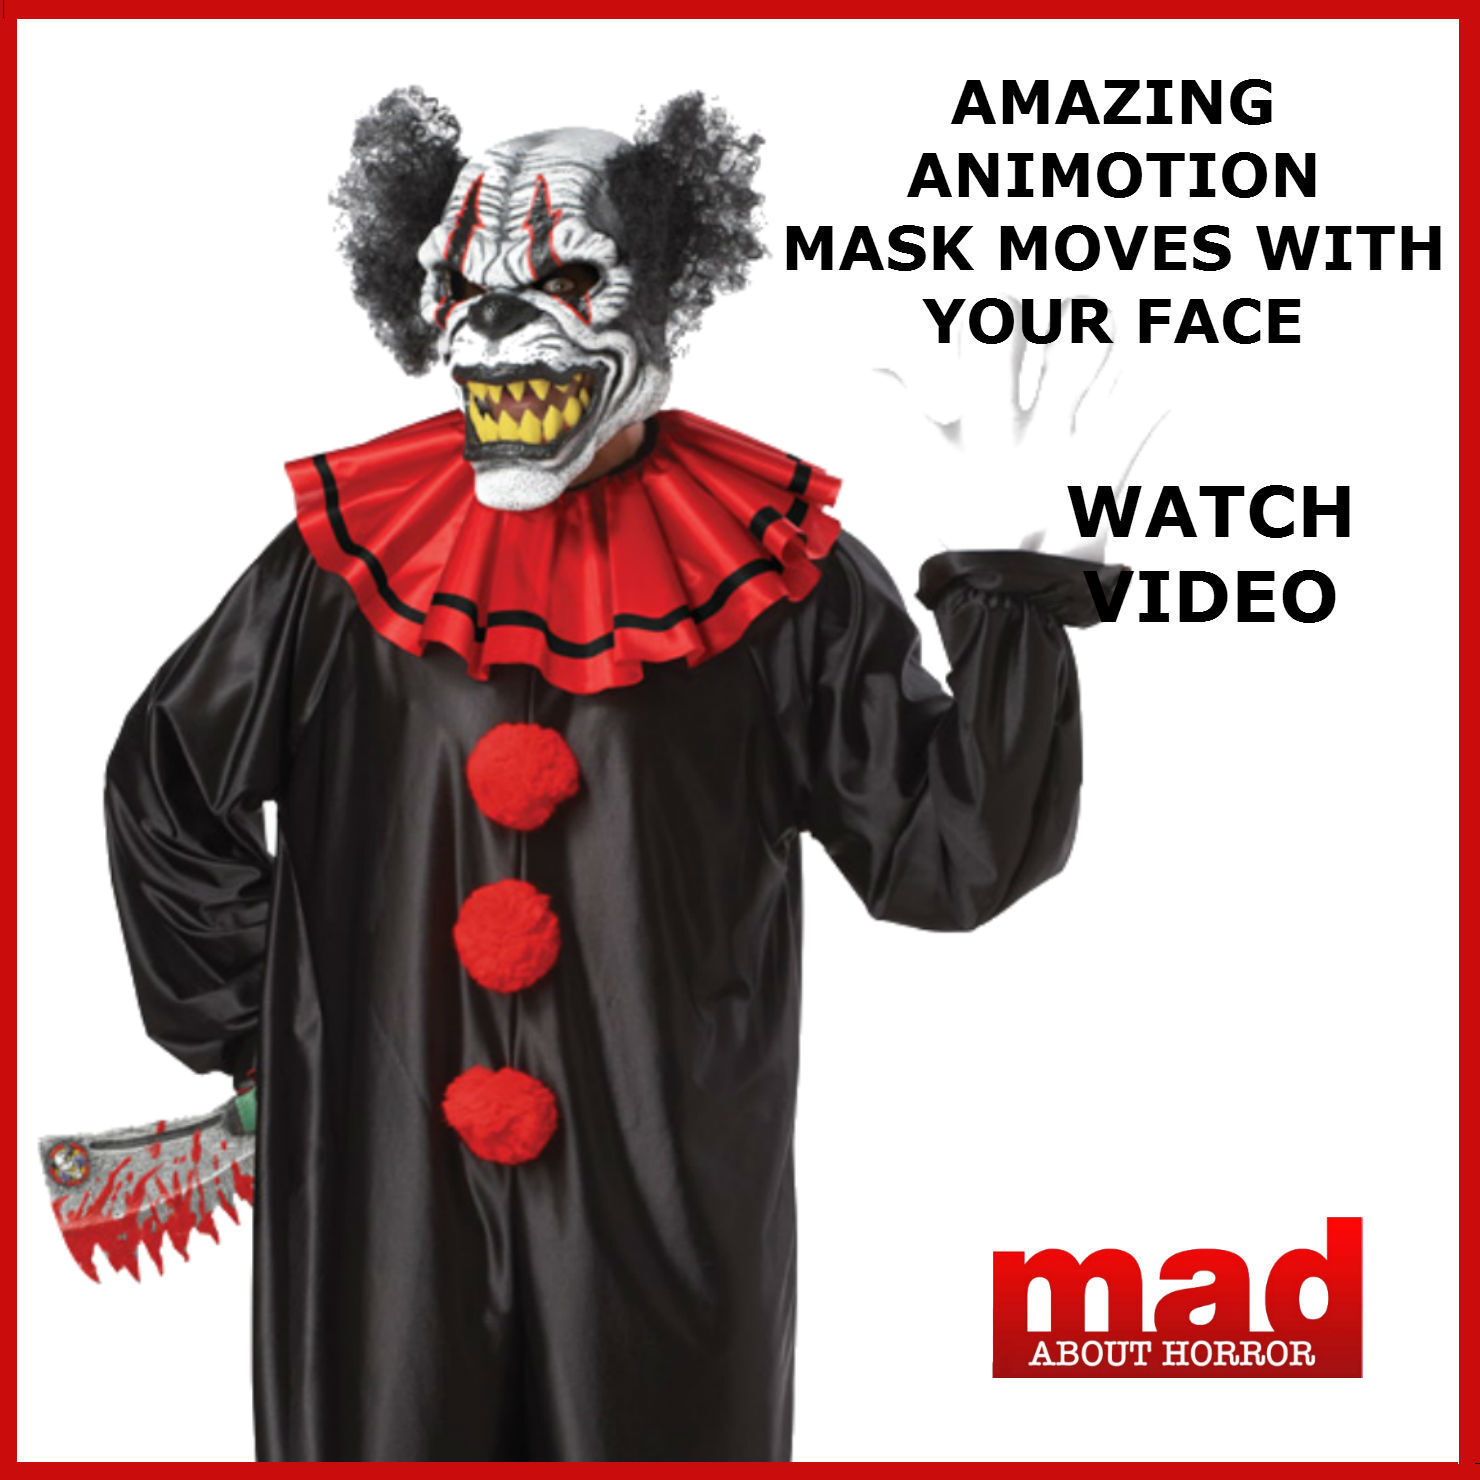 LAST LAUGH Evil Clown Costume+Animotion Moving Mask-Halloween ...